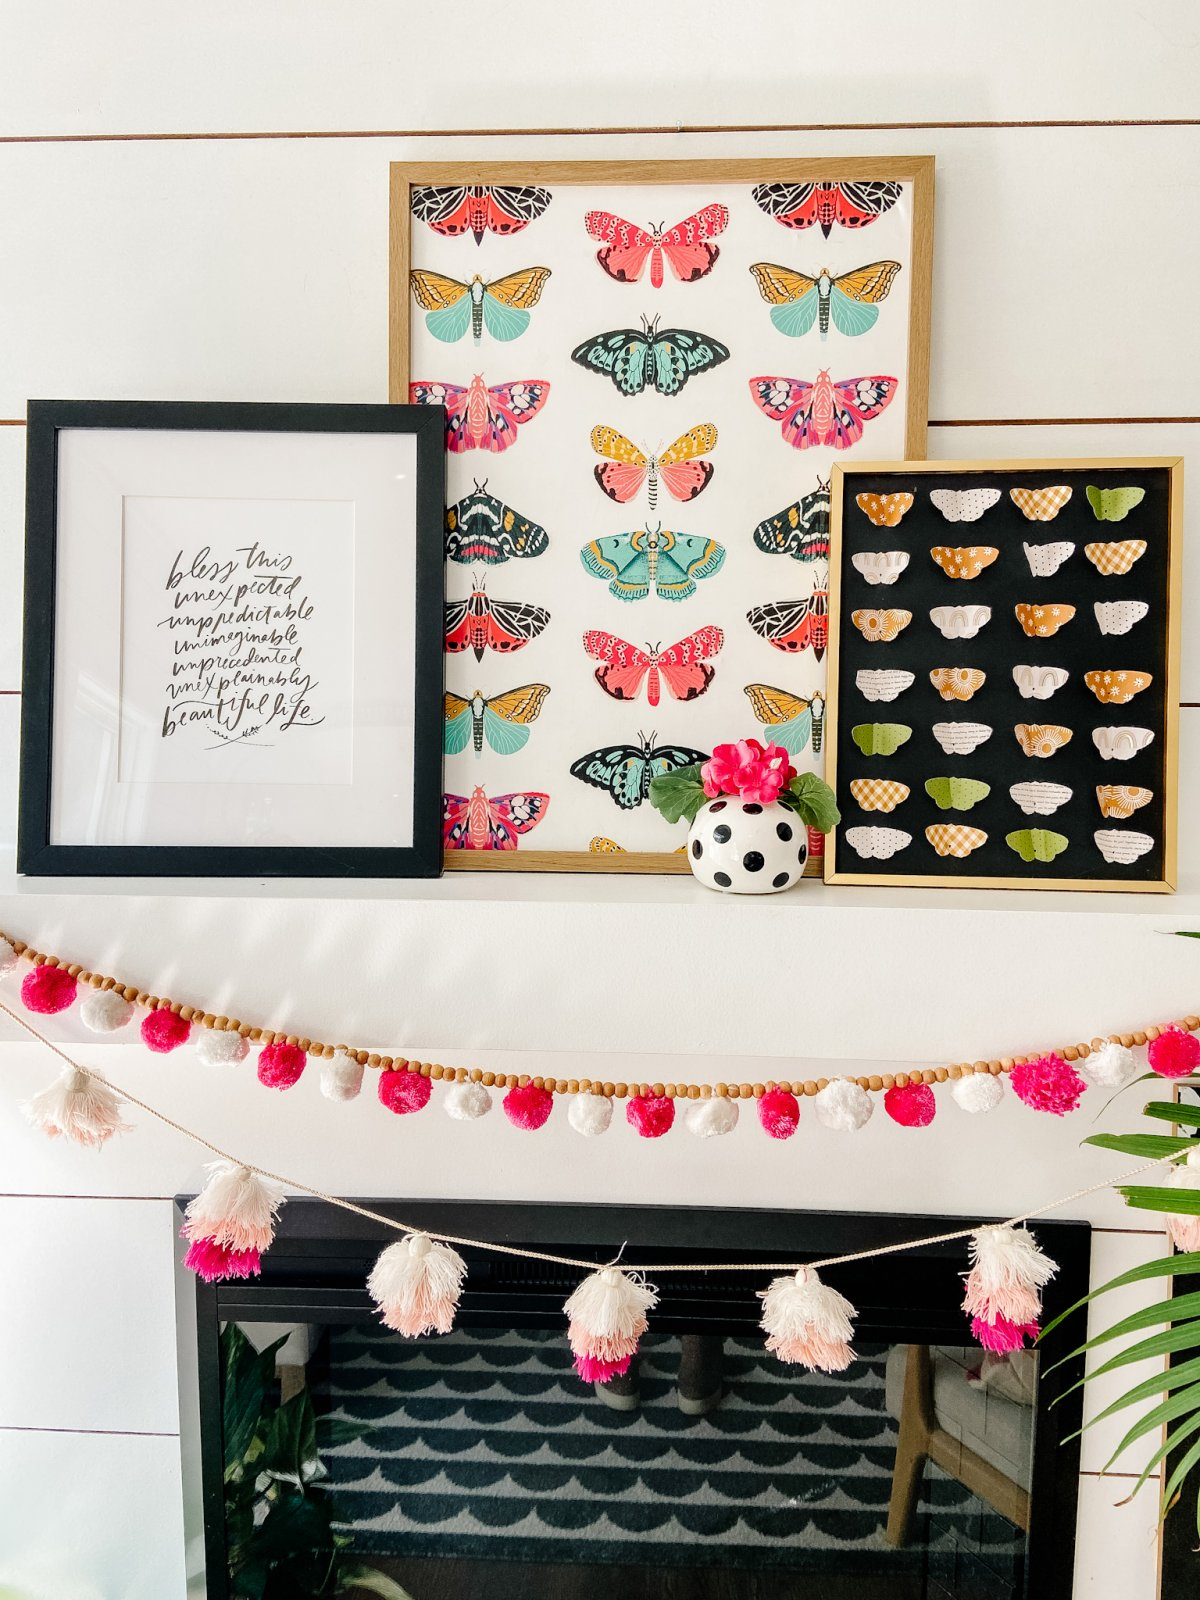 Butterfly Paper Specimen Art and Mantel. Use scrapbook paper and a butterfly die cut to create a three-dimensional and whimsical specimen art for a summer mantel!